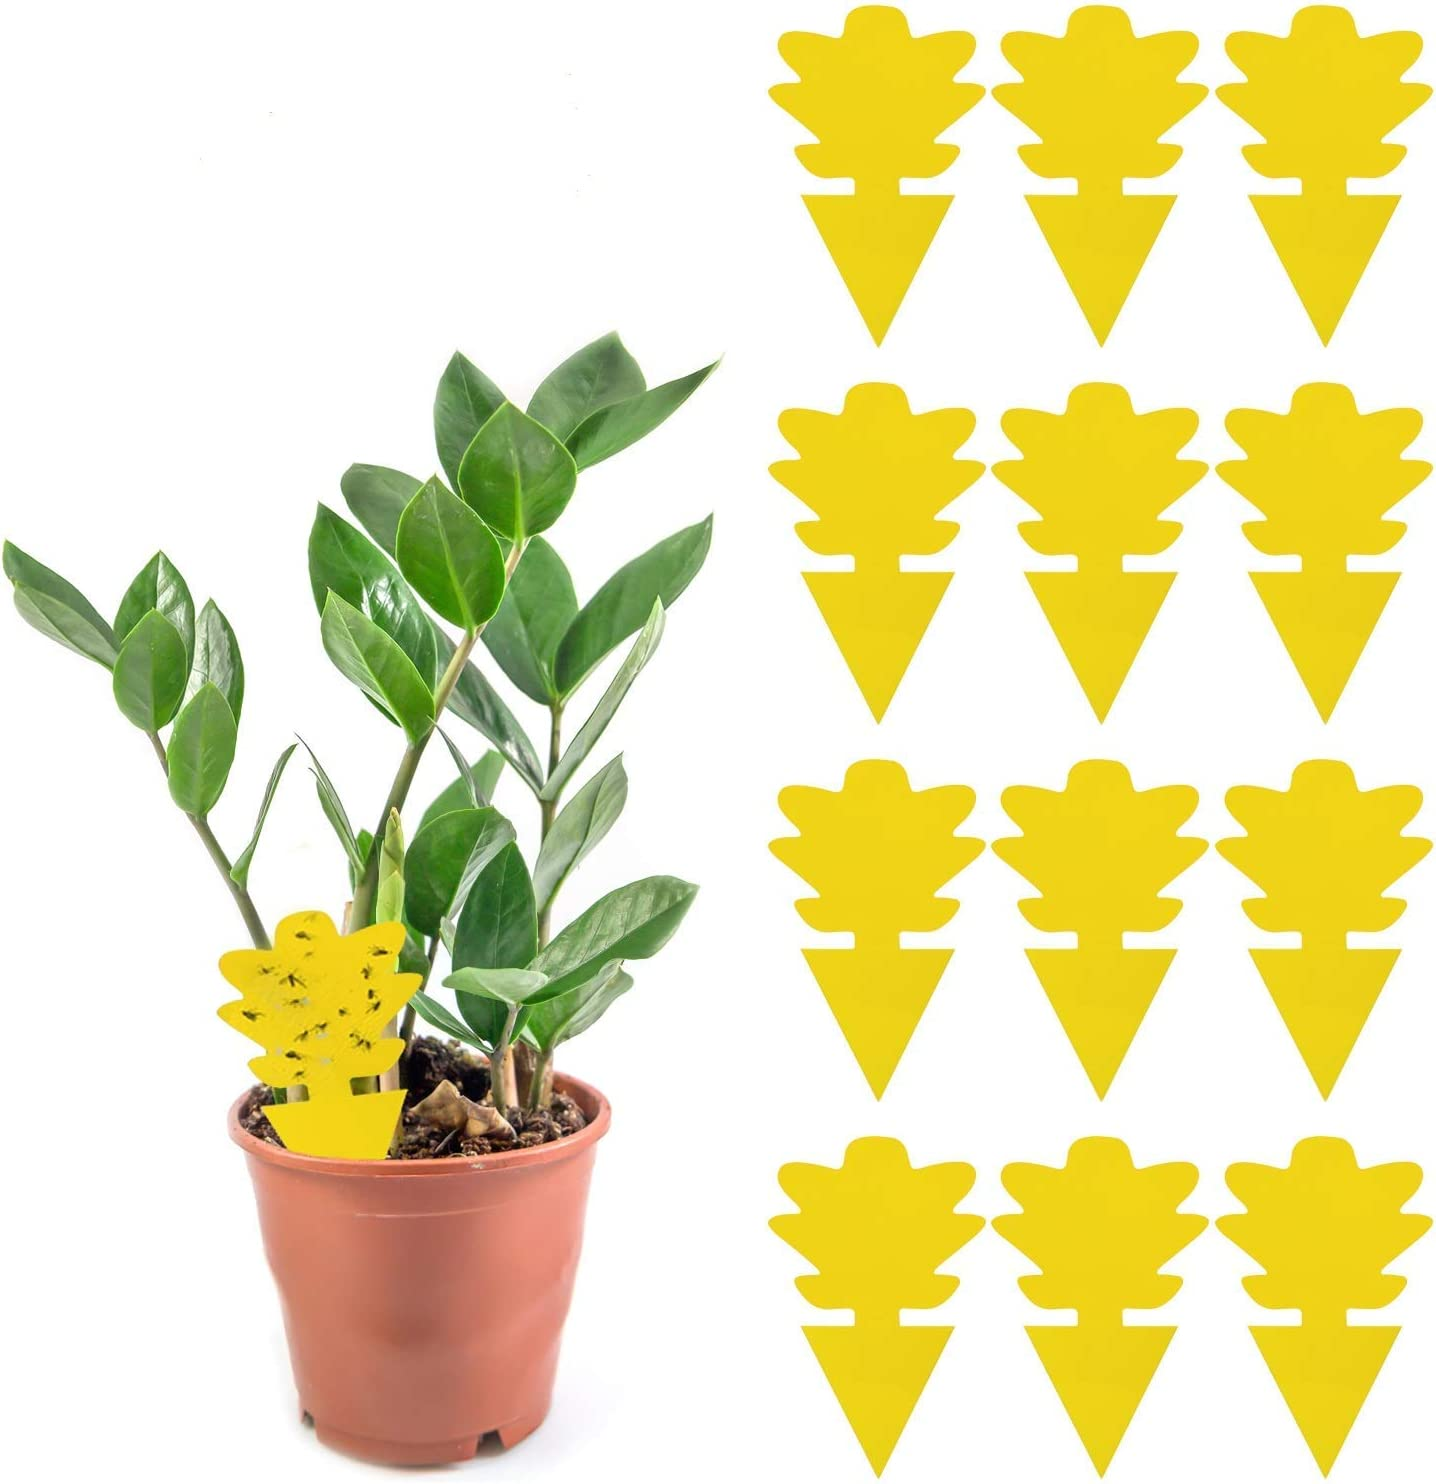 12 Pack Sticky Trap, Fruit Fly and Fungus Gnat Trap Killer Indoor and Outdoor, Protect The Plant, Non-Toxic and Odorless(Tree-A2 Shape)